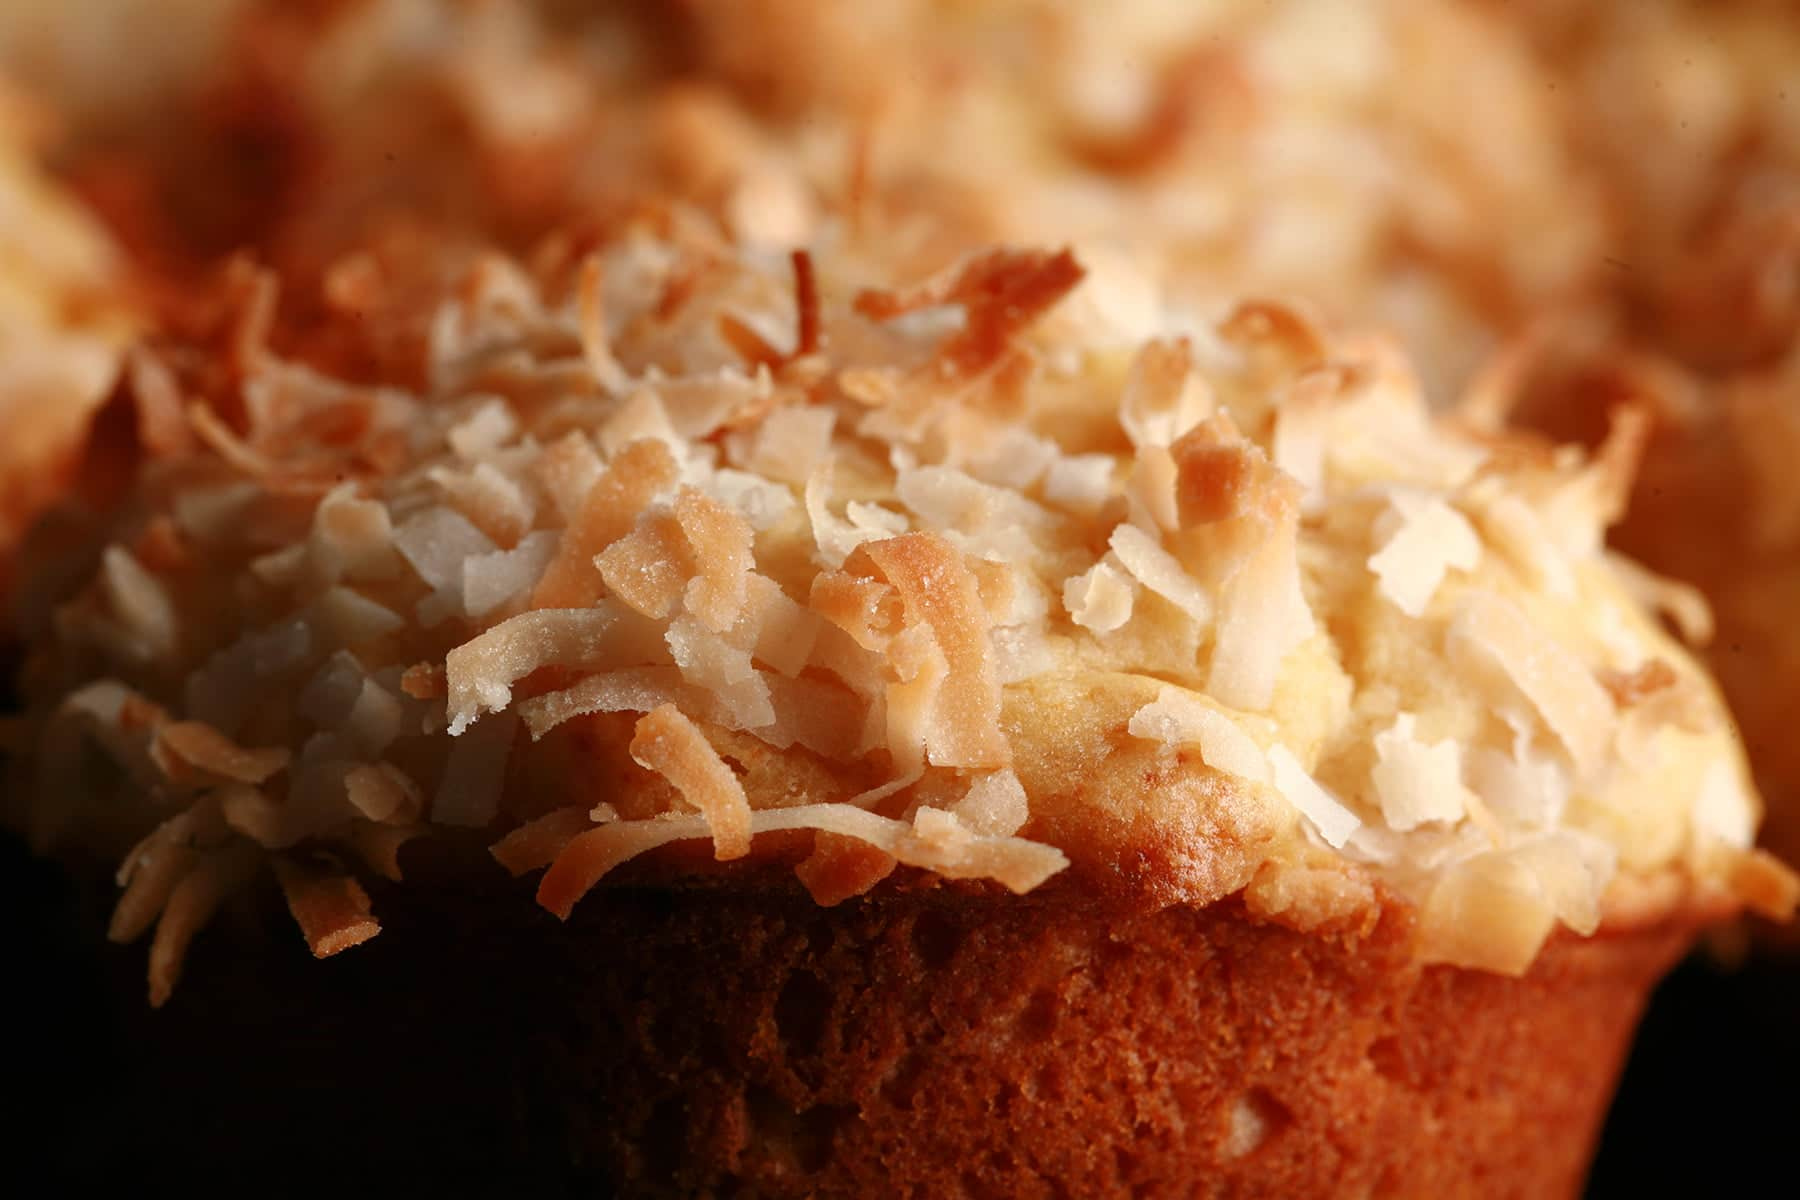 A close up view of a pina colada muffin. Toasted coconut covers the top of it.